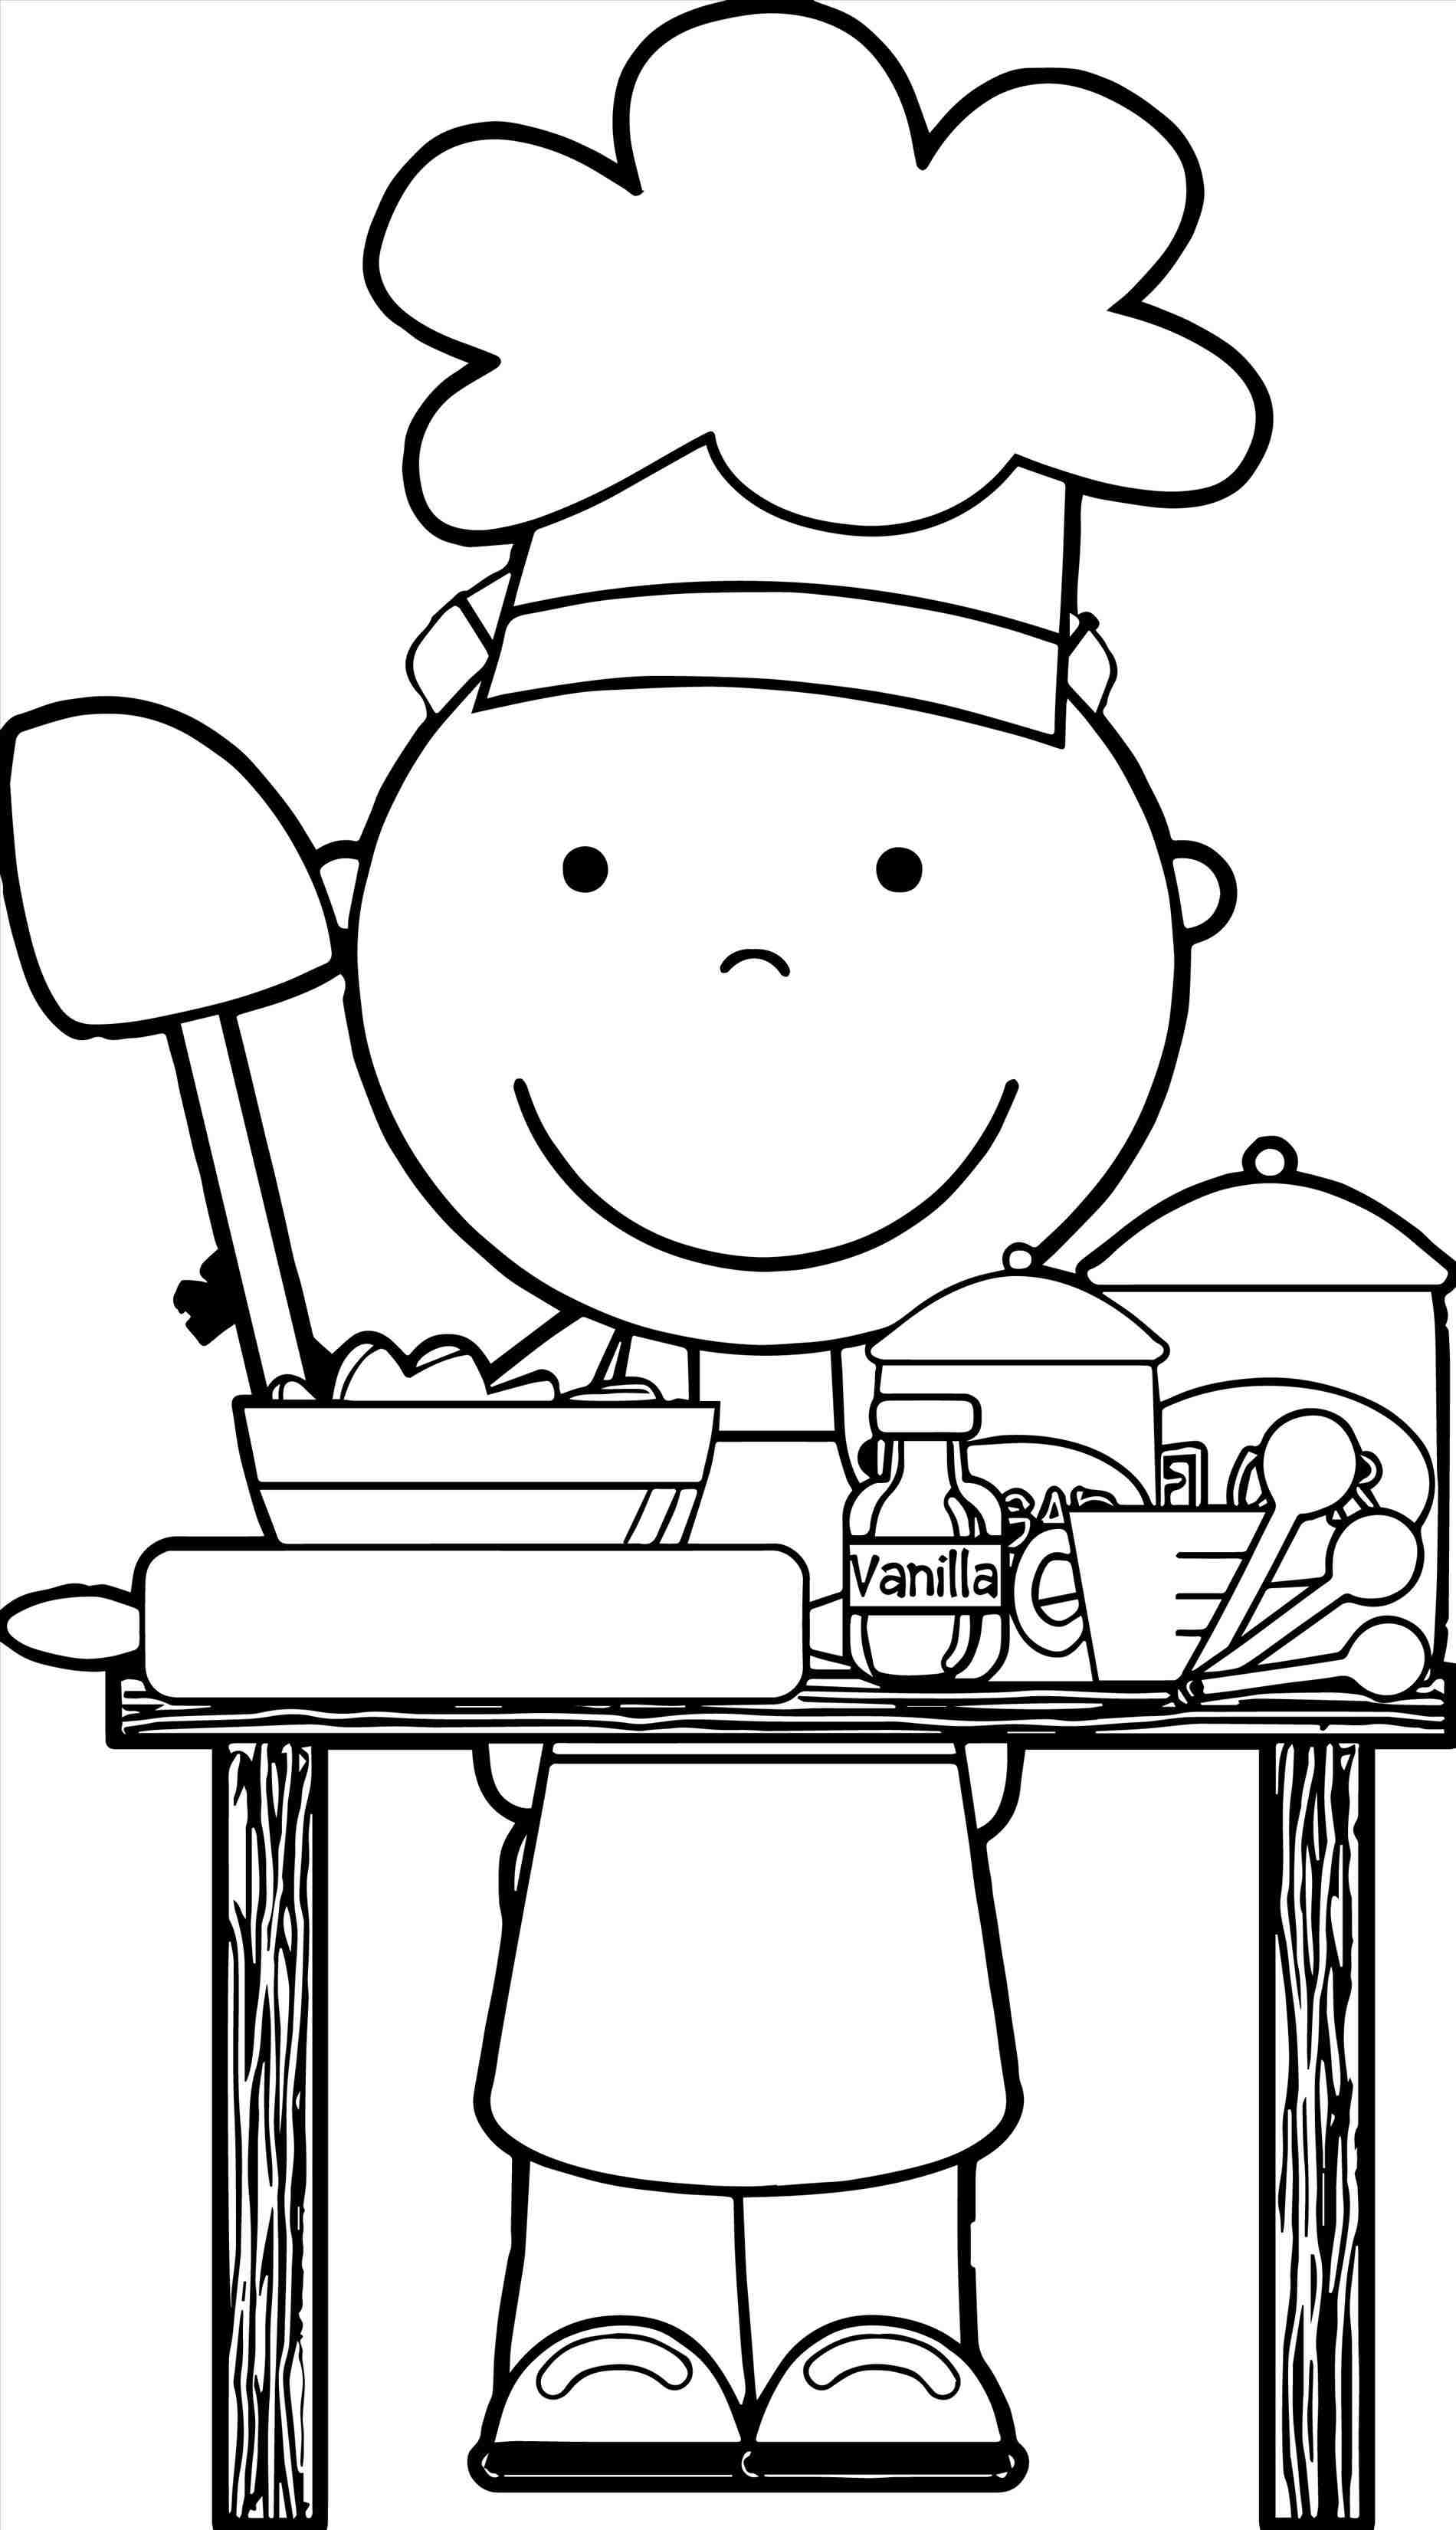 Wonderful Baking Clipart Black And White of » Clipart Station.